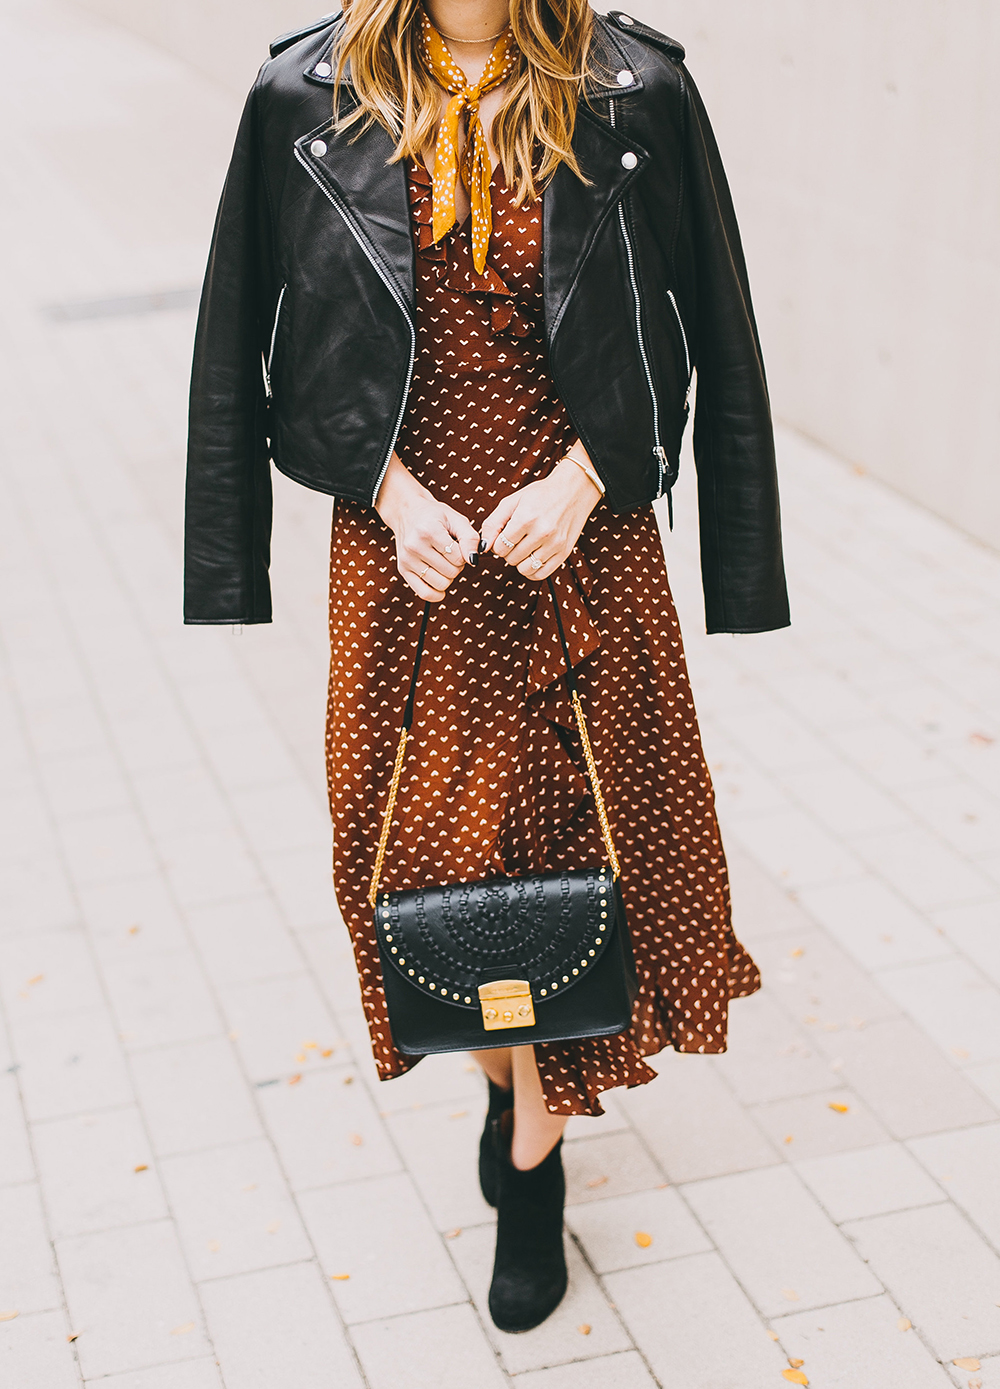 livvyland-blog-olivia-watson-austin-texas-fashion-blogger-urban-outfitters-wrap-dress-sezane-leather-jacket-fall-outfit-idea-6